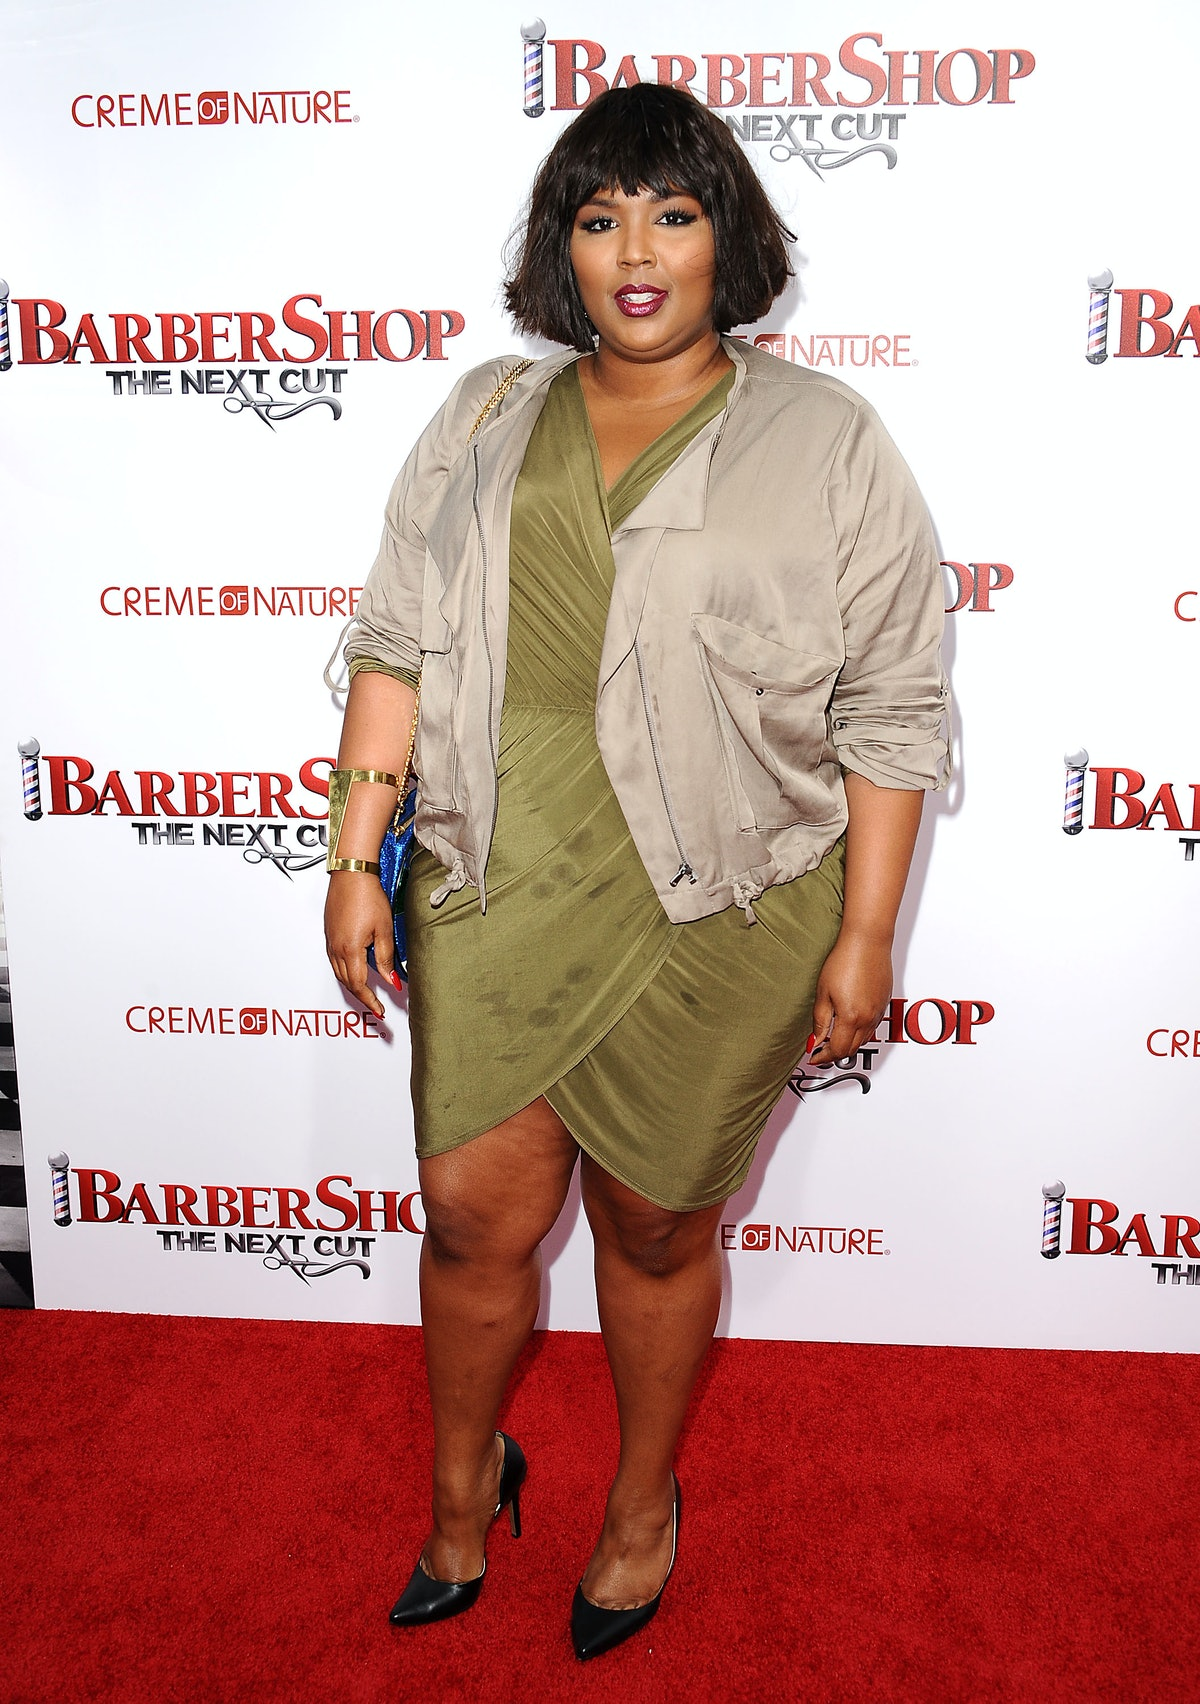 Lizzo on a red carpet.